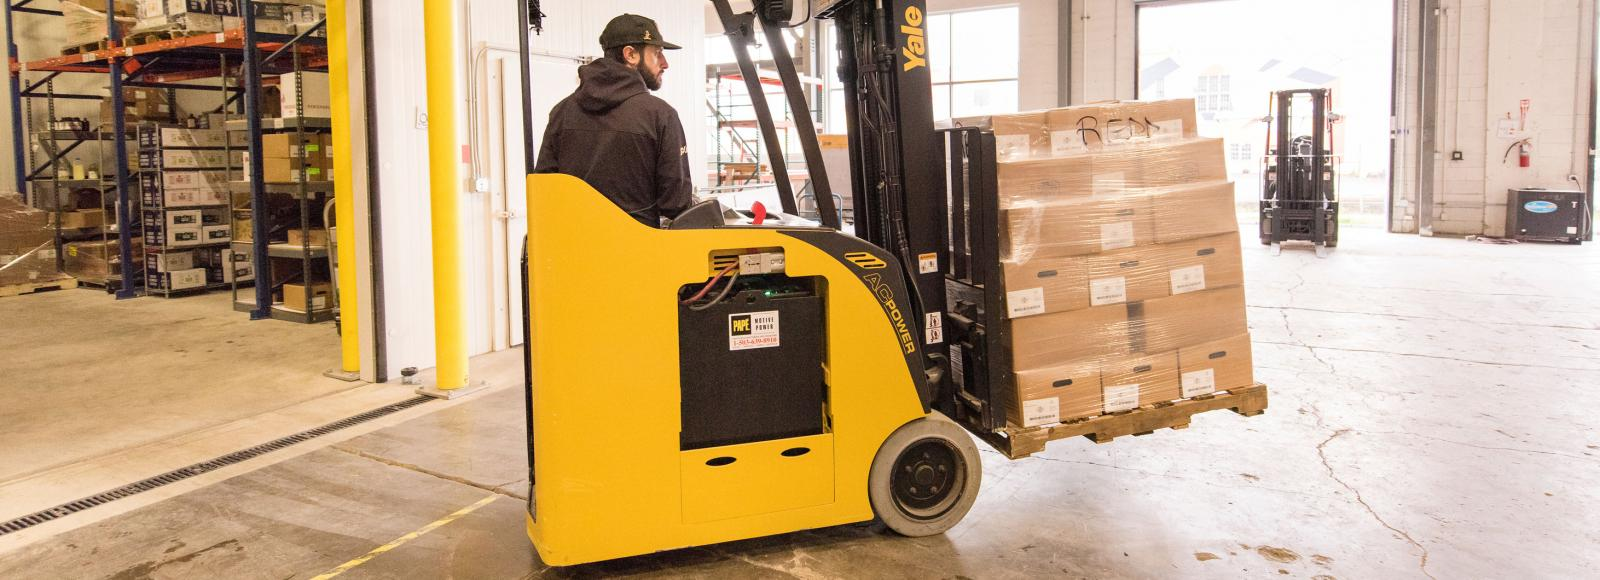 A man in black hat and black sweatshirt drives a yellow forklift carrying a stack of boxes.